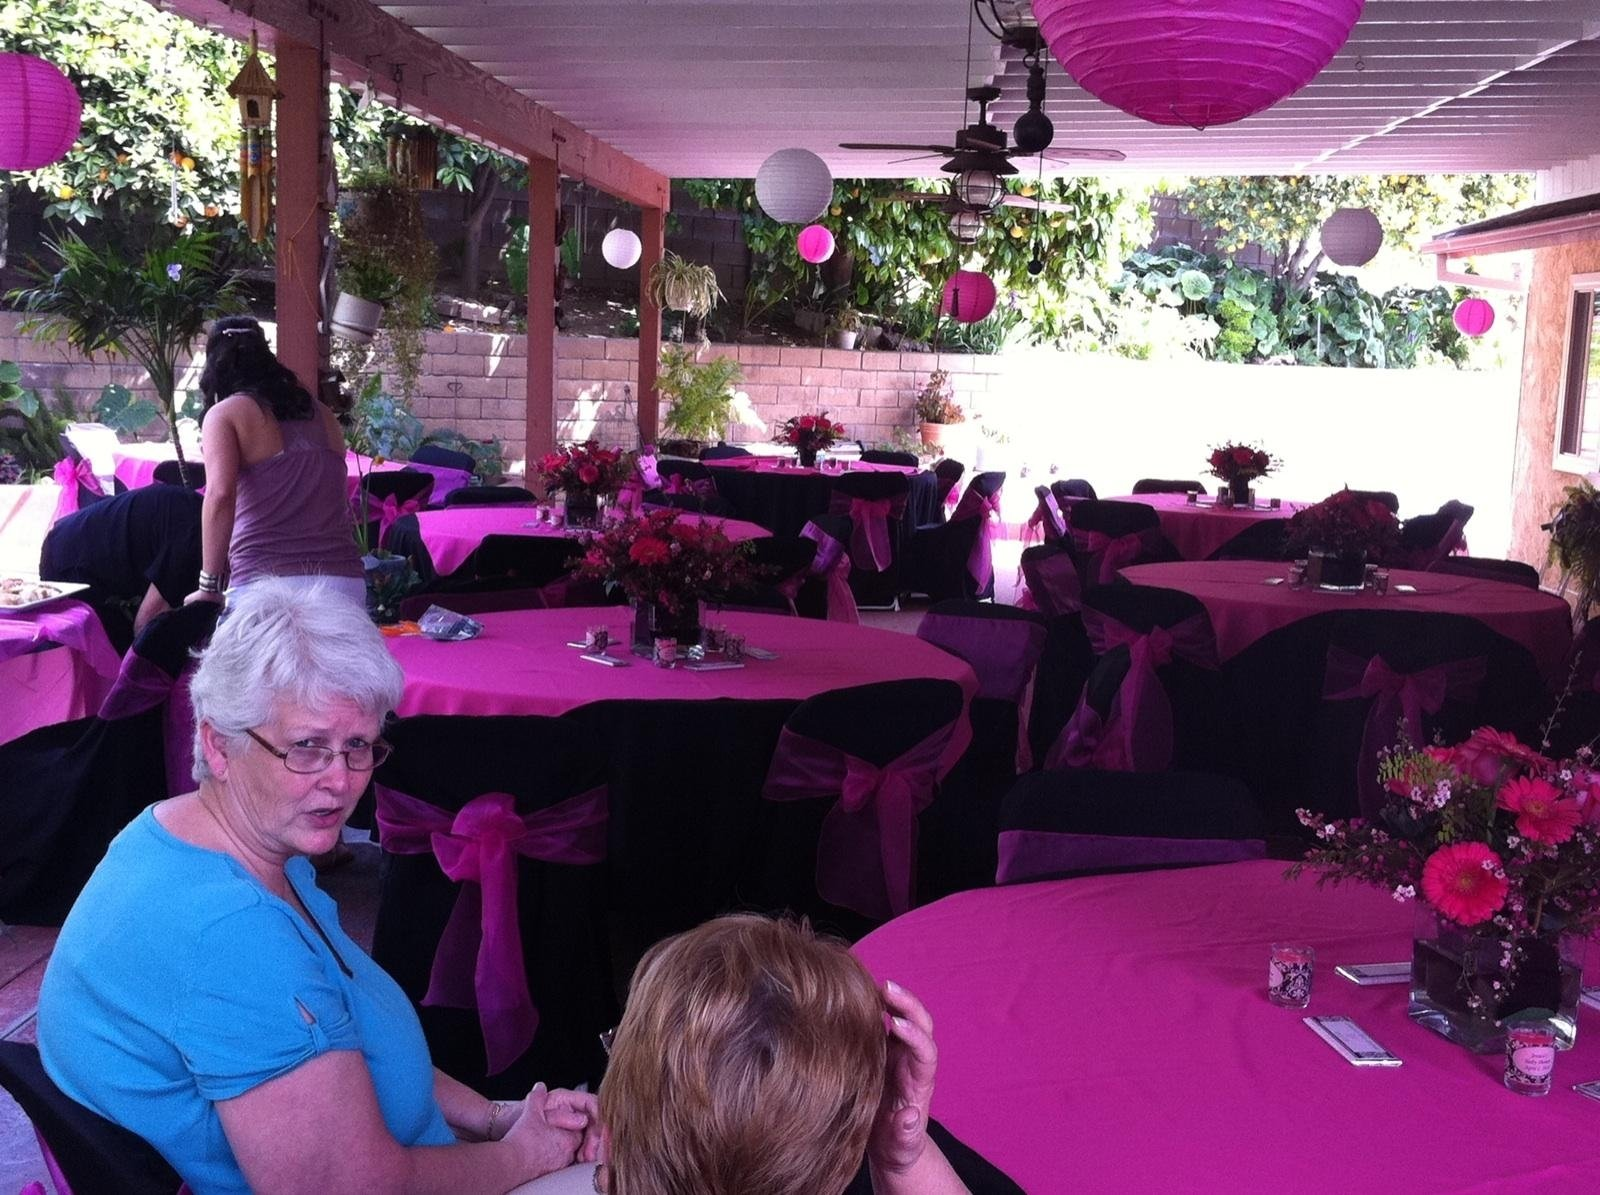 10 Perfect Pink And Black Baby Shower Ideas black and white baby shower themes the patio cover with black 2021